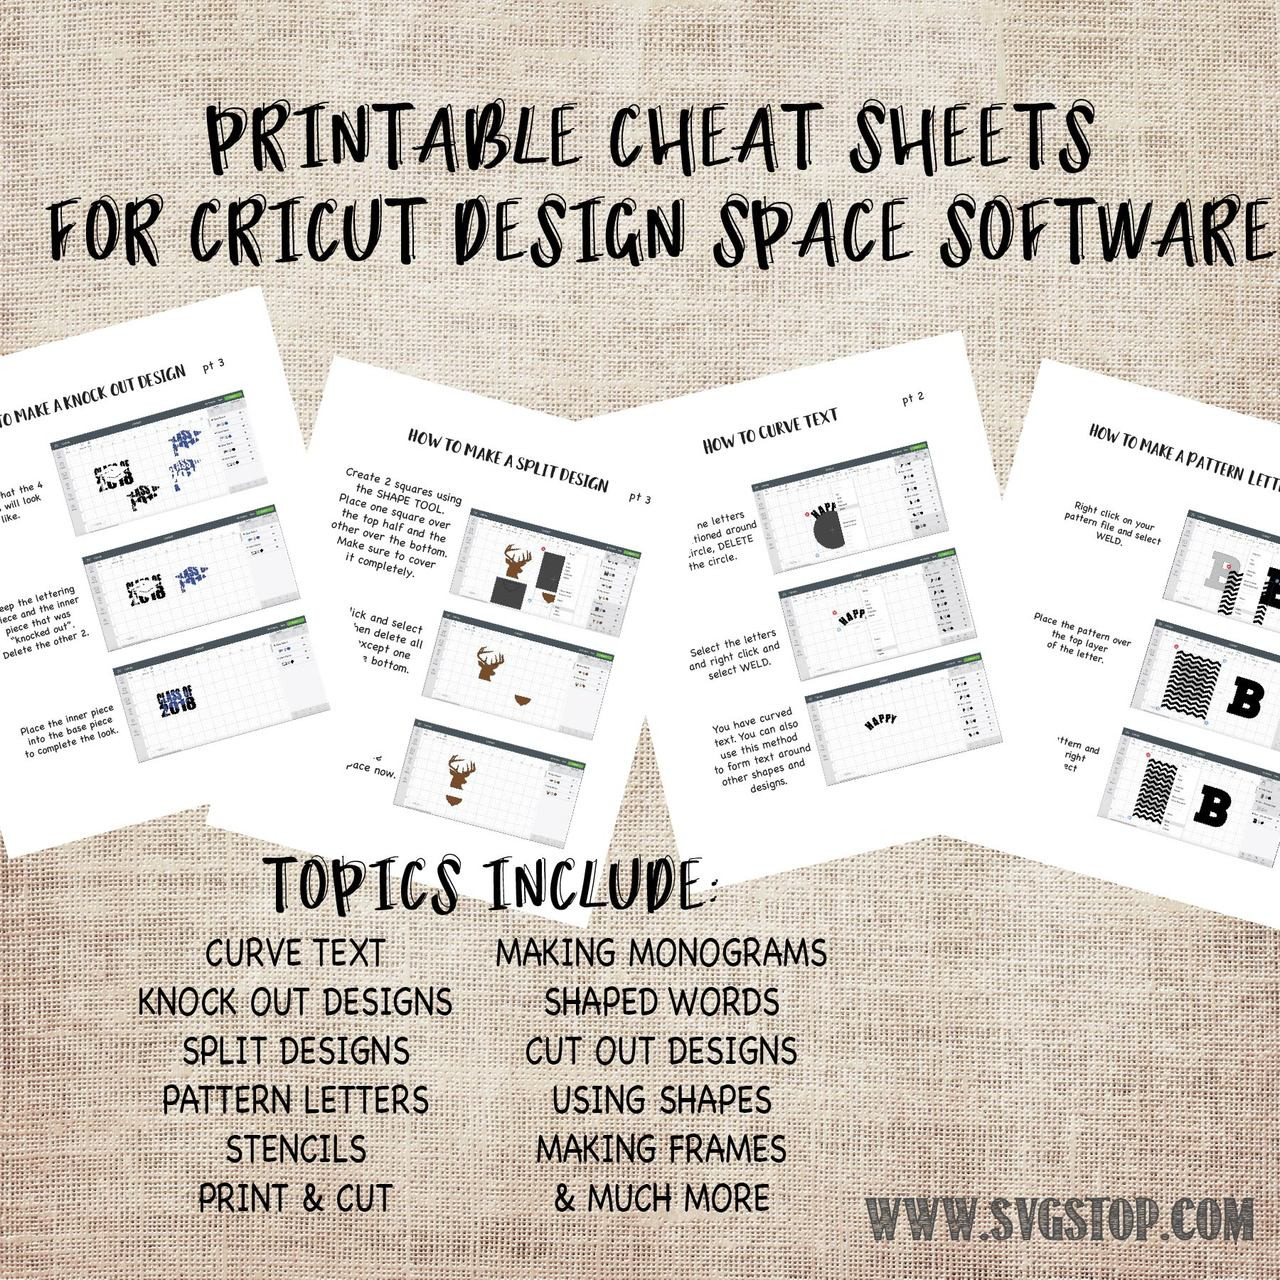 photo relating to Printable Guide identified as Printable Cheat Sheets for Cricut Layout Location - Inexperienced persons Expert In the direction of Coming up with Minimize Documents